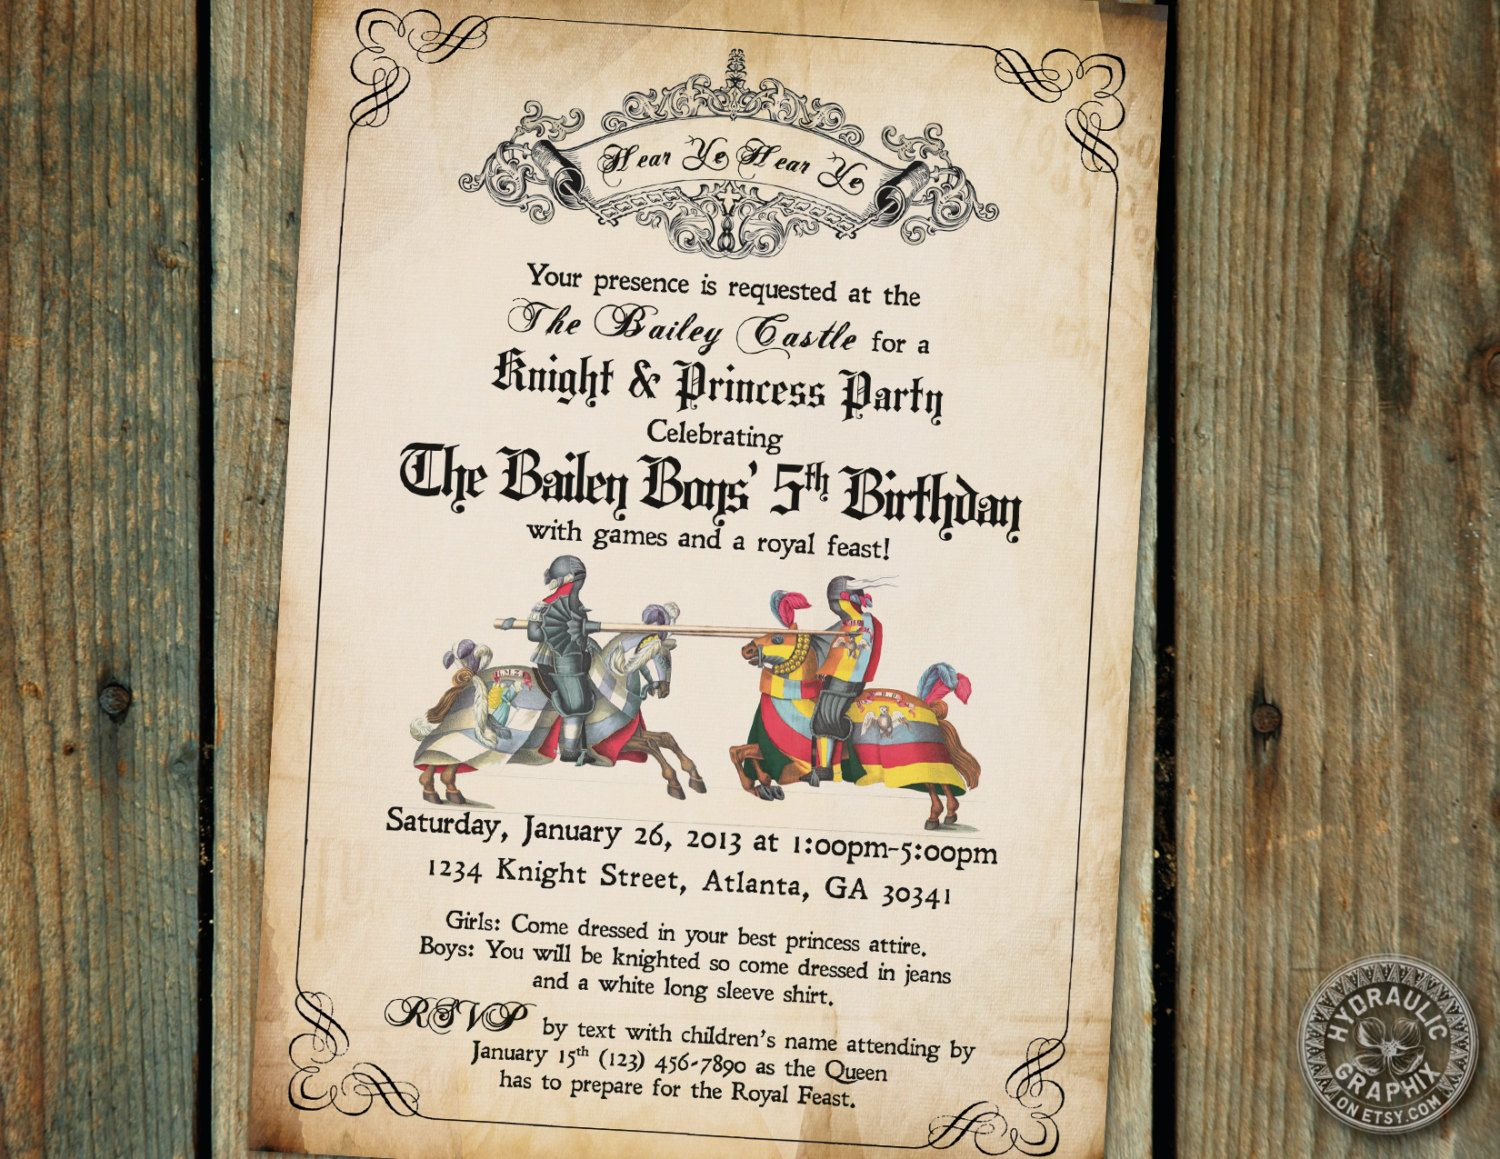 bday party invitation mail%0A Medieval Times or Renaissance Birthday Party Invitation with knights at  battle